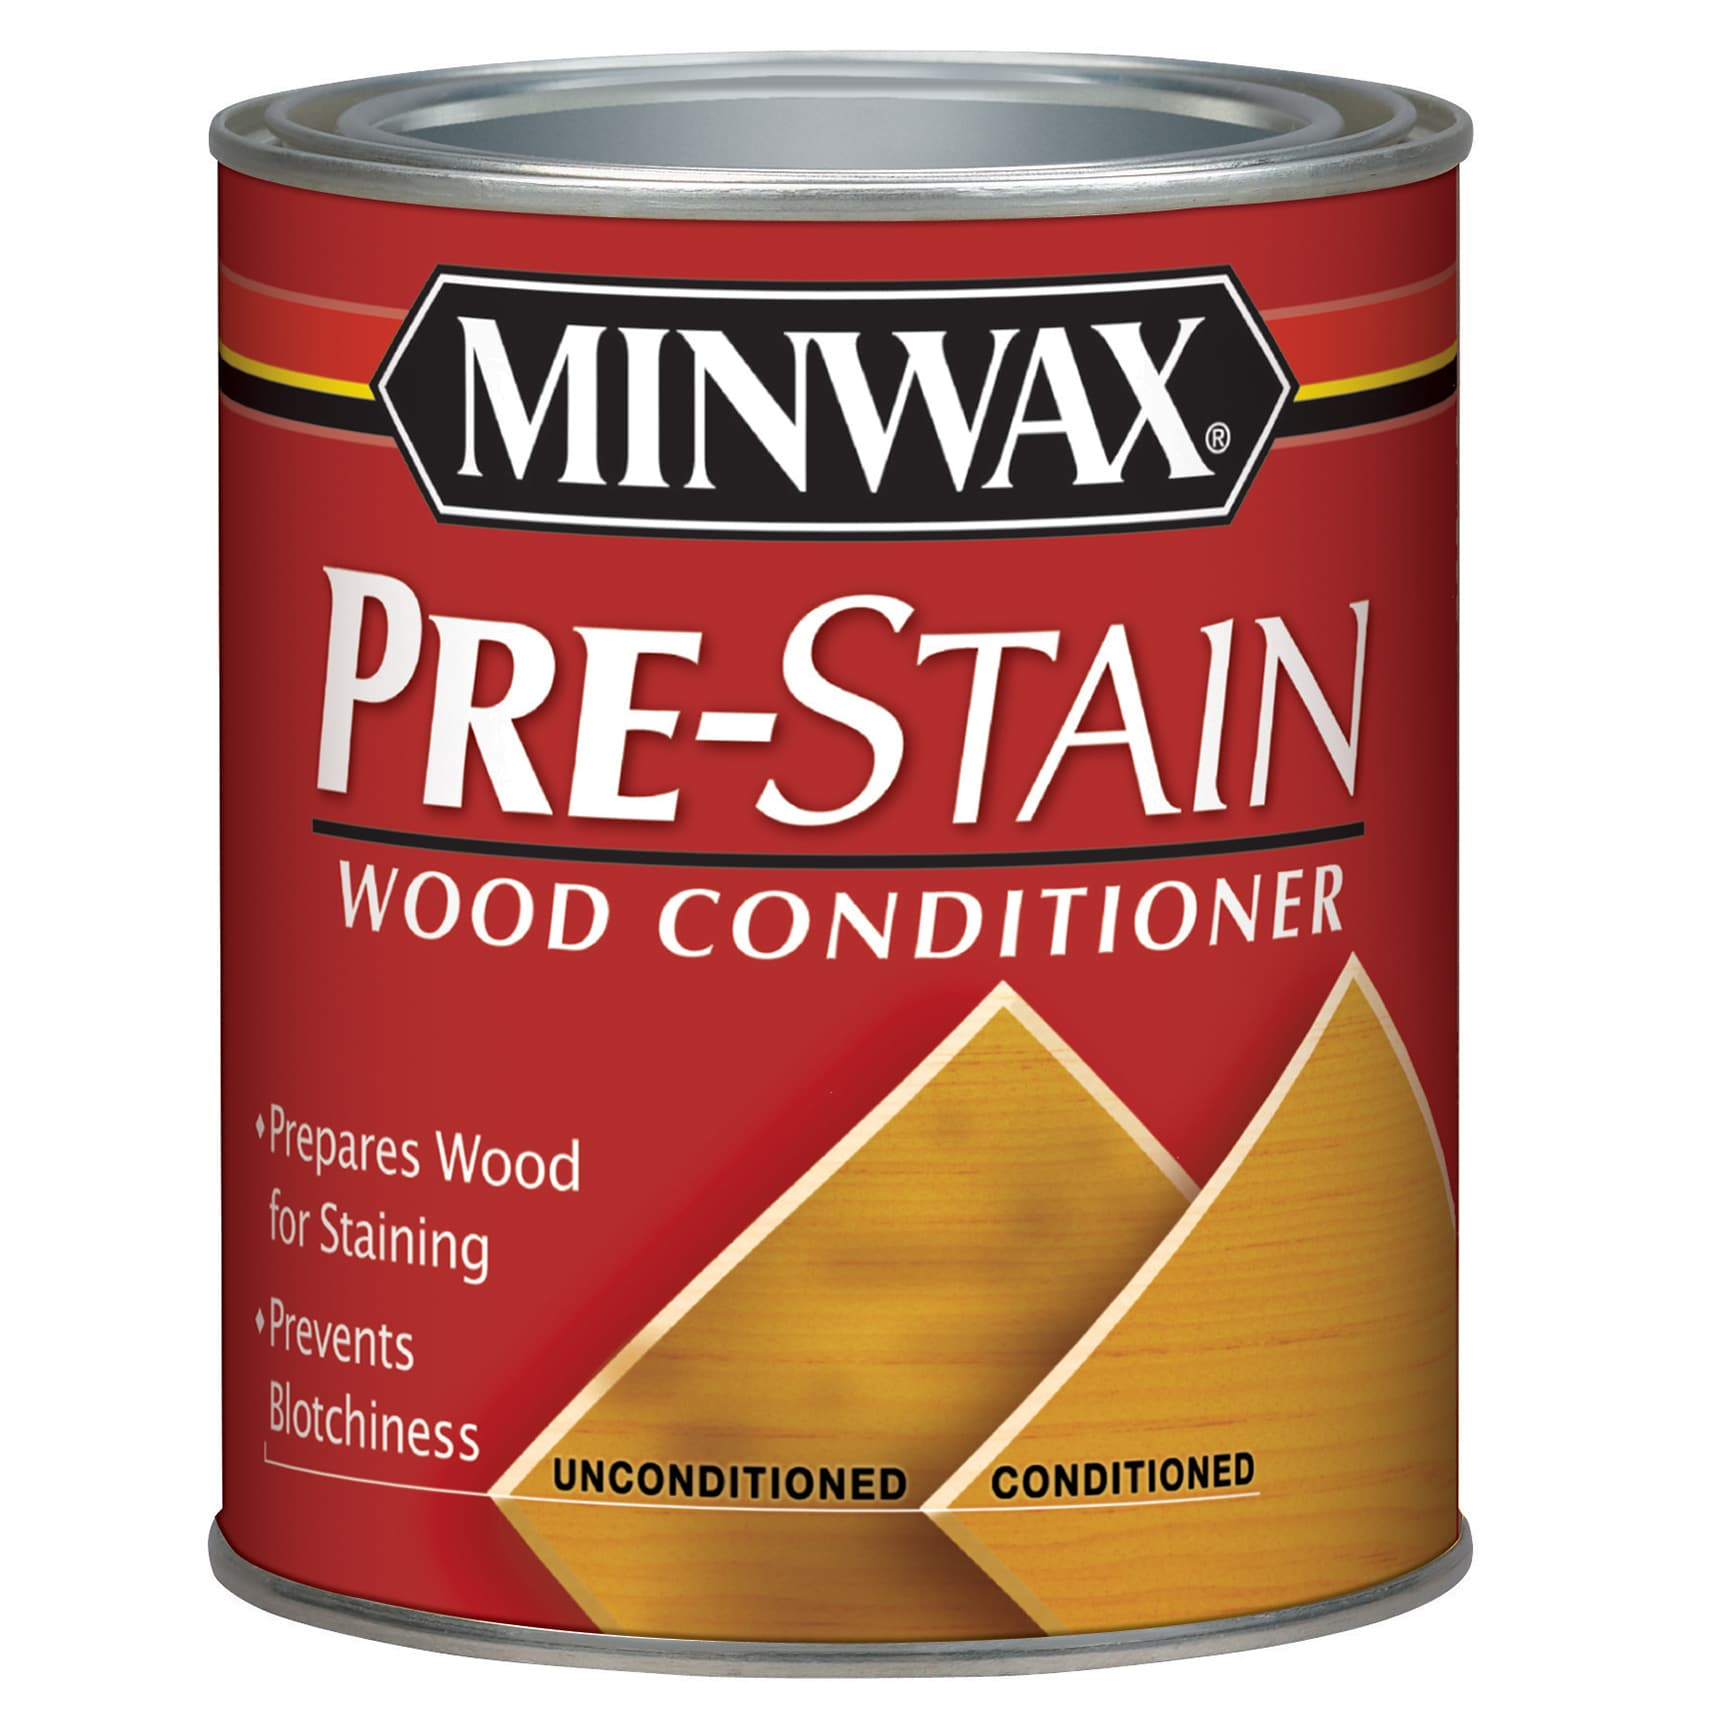 Minwax 61851 1 Qt Pre-Stain Wood Conditioner (Interior St...